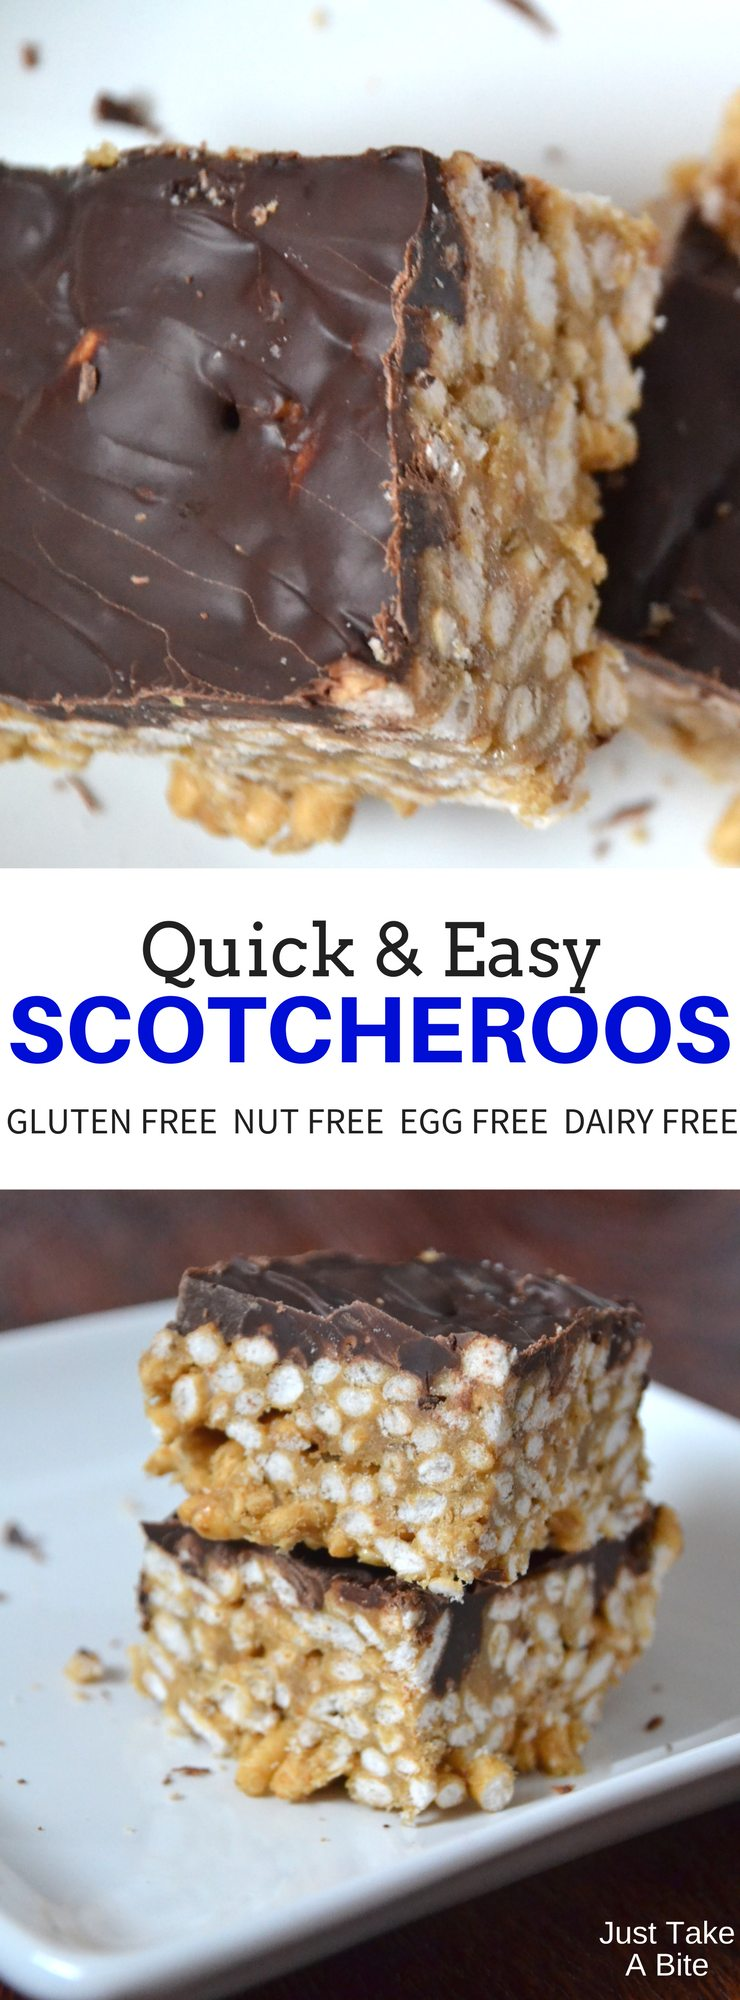 These scotcheroos come together in about ten minutes, using real, allergen friendly ingredients. A simple, delicious dessert with no baking required!